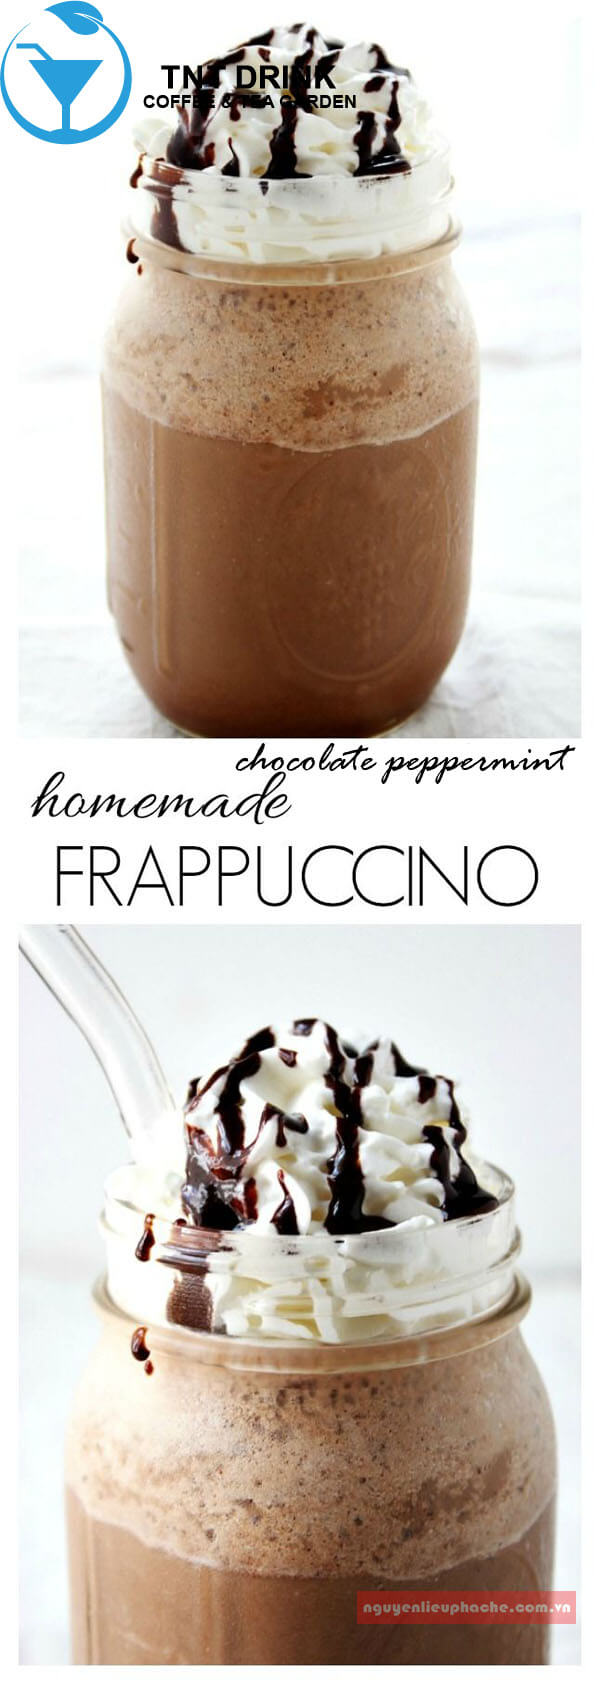 chocolate peppermint frappuchino 3